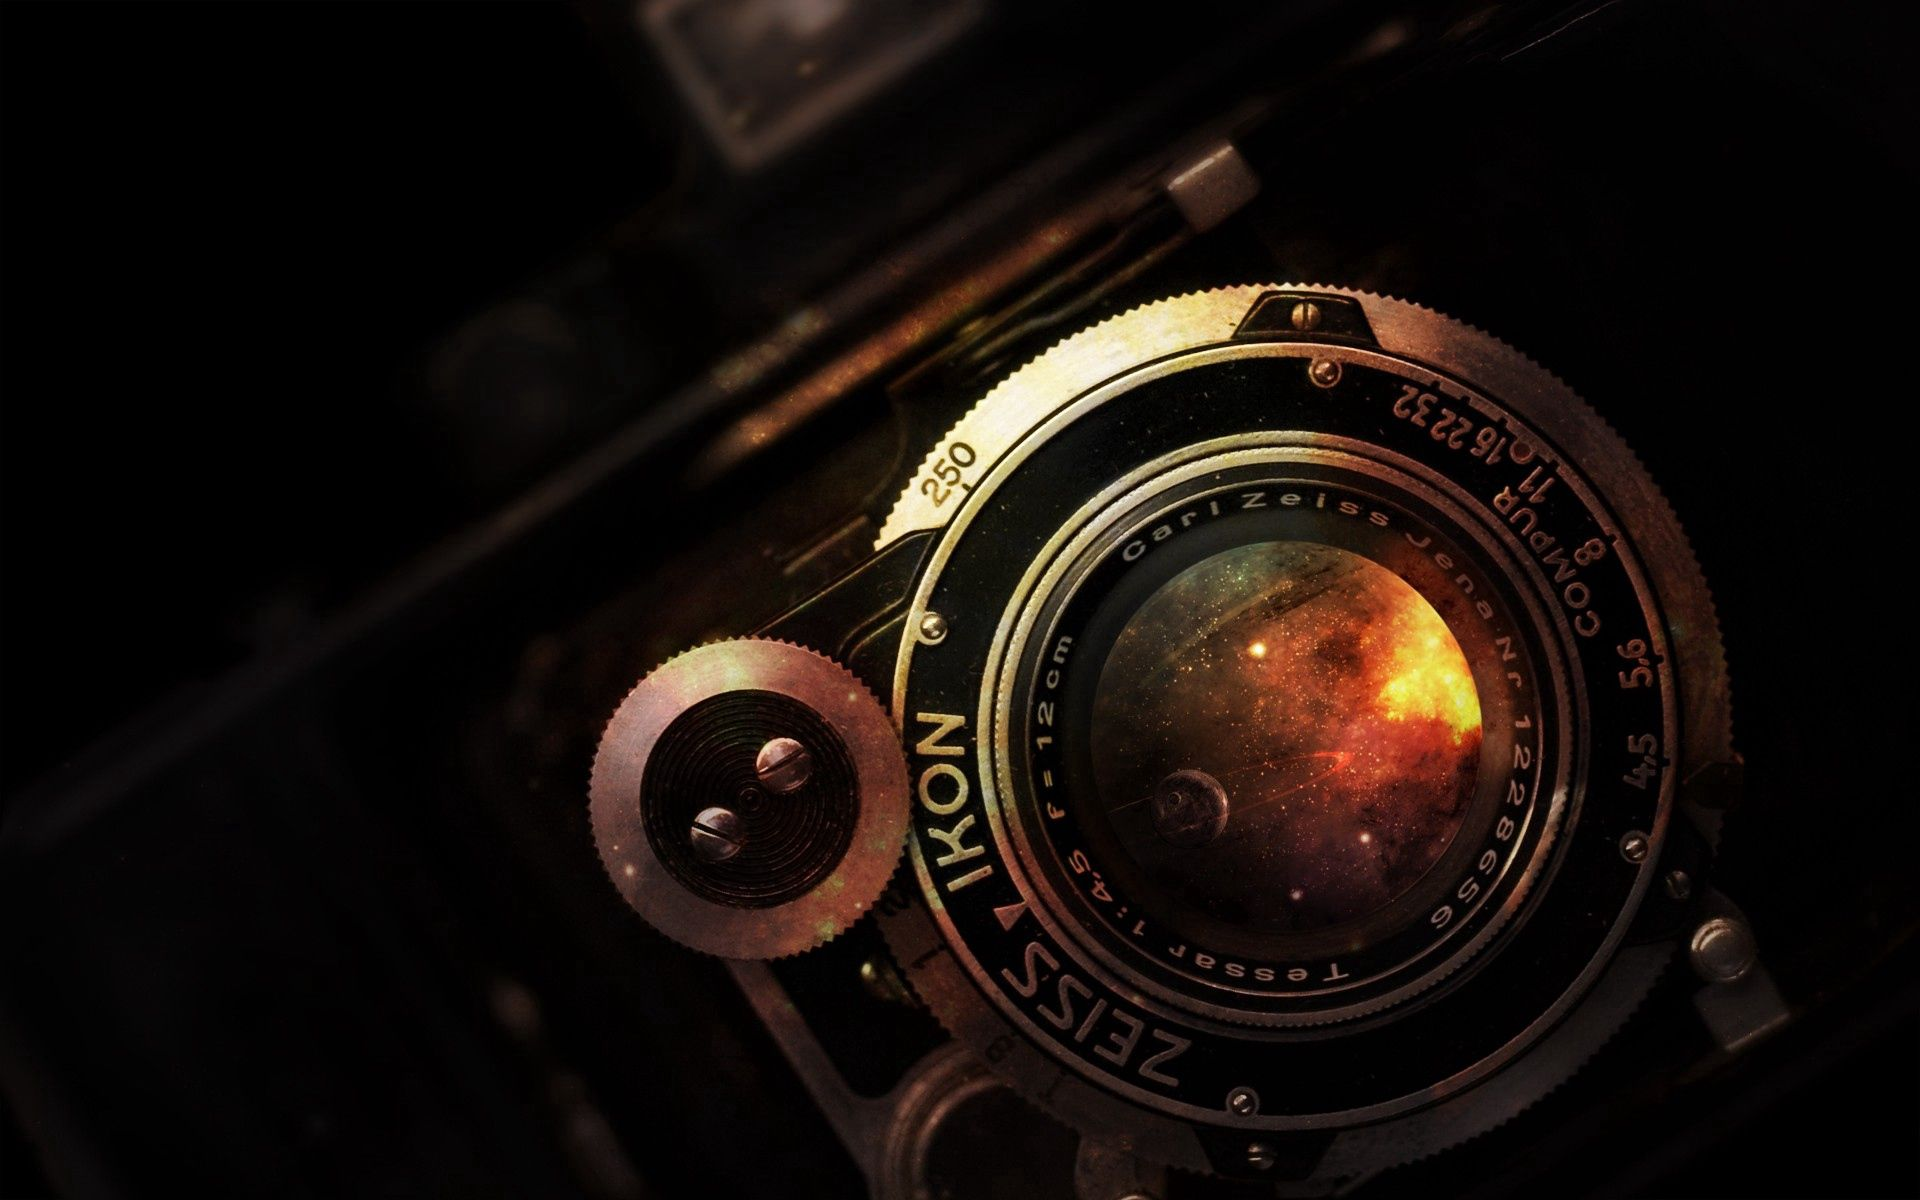 58861 download wallpaper Dark, Old, Lens, Camera, Ancient, Rarity, Nikon screensavers and pictures for free